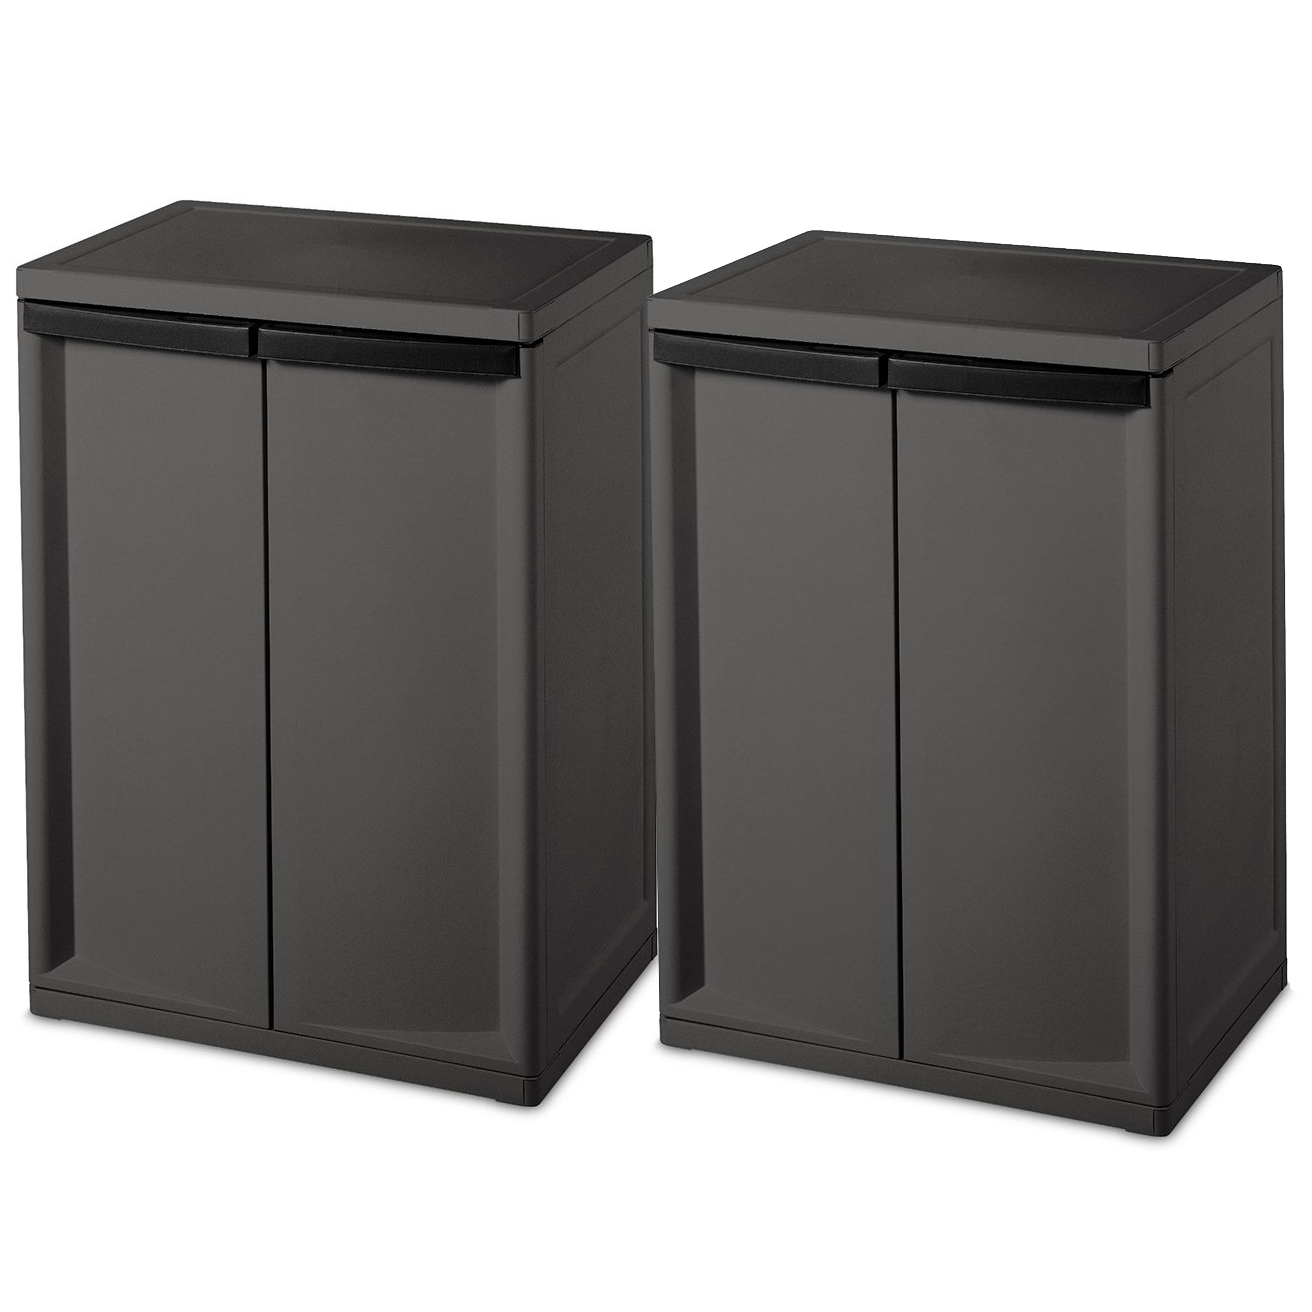 Tips For Buying Garage Utility Cabinets: Sterilite 2 Shelf Laundry Garage Utility Storage Cabinet Flat Gray 0140 (2 Pack) 842372127639